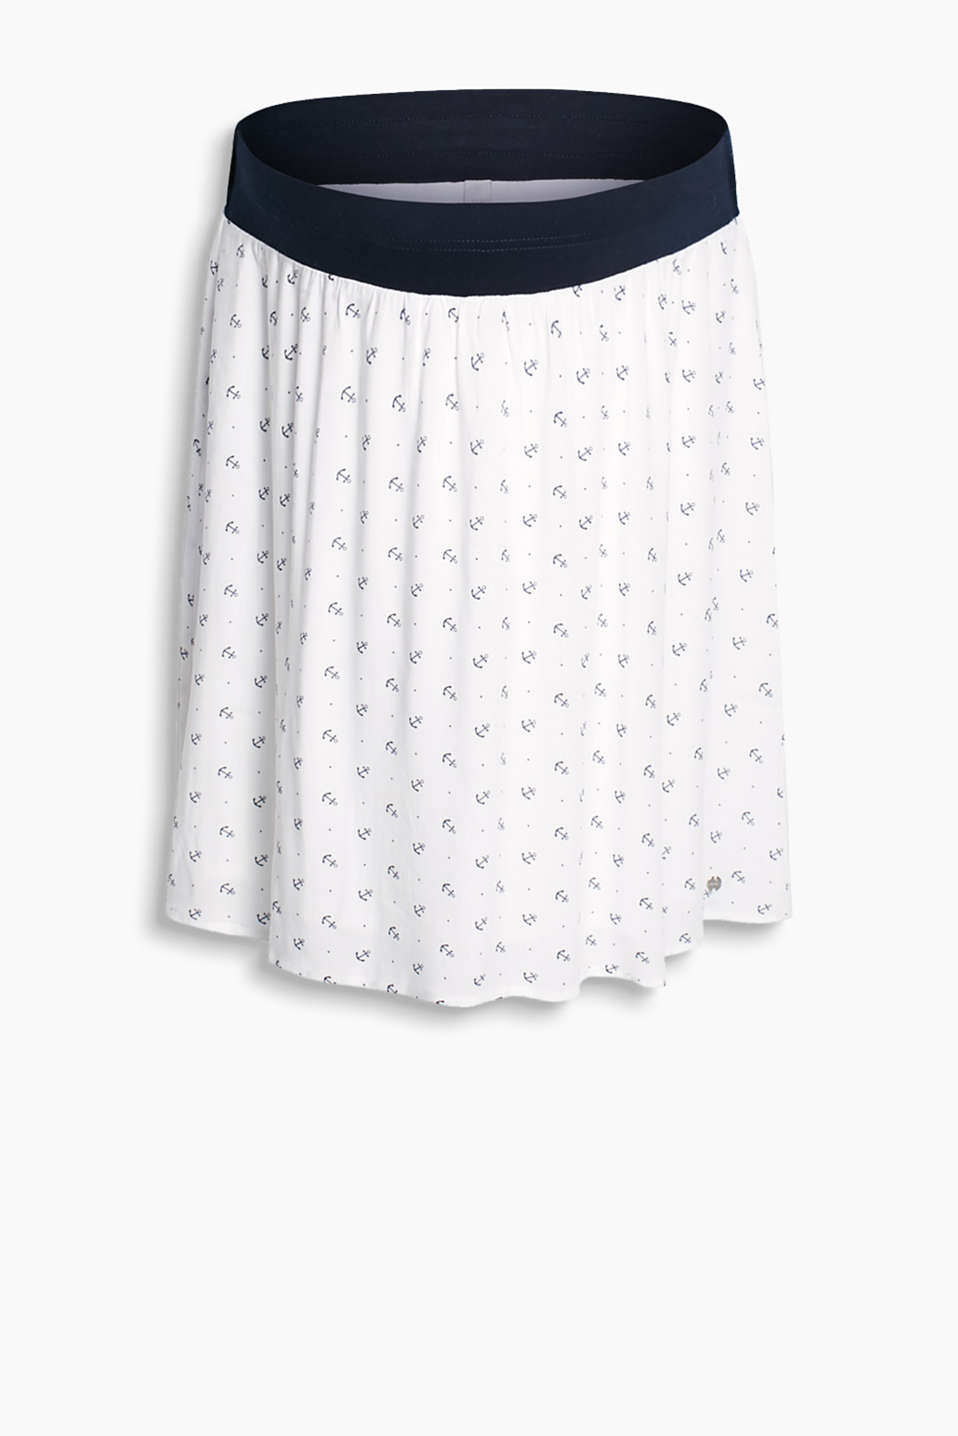 Flared, swirling woven skirt with an anchor print and supportive under-bump waistband